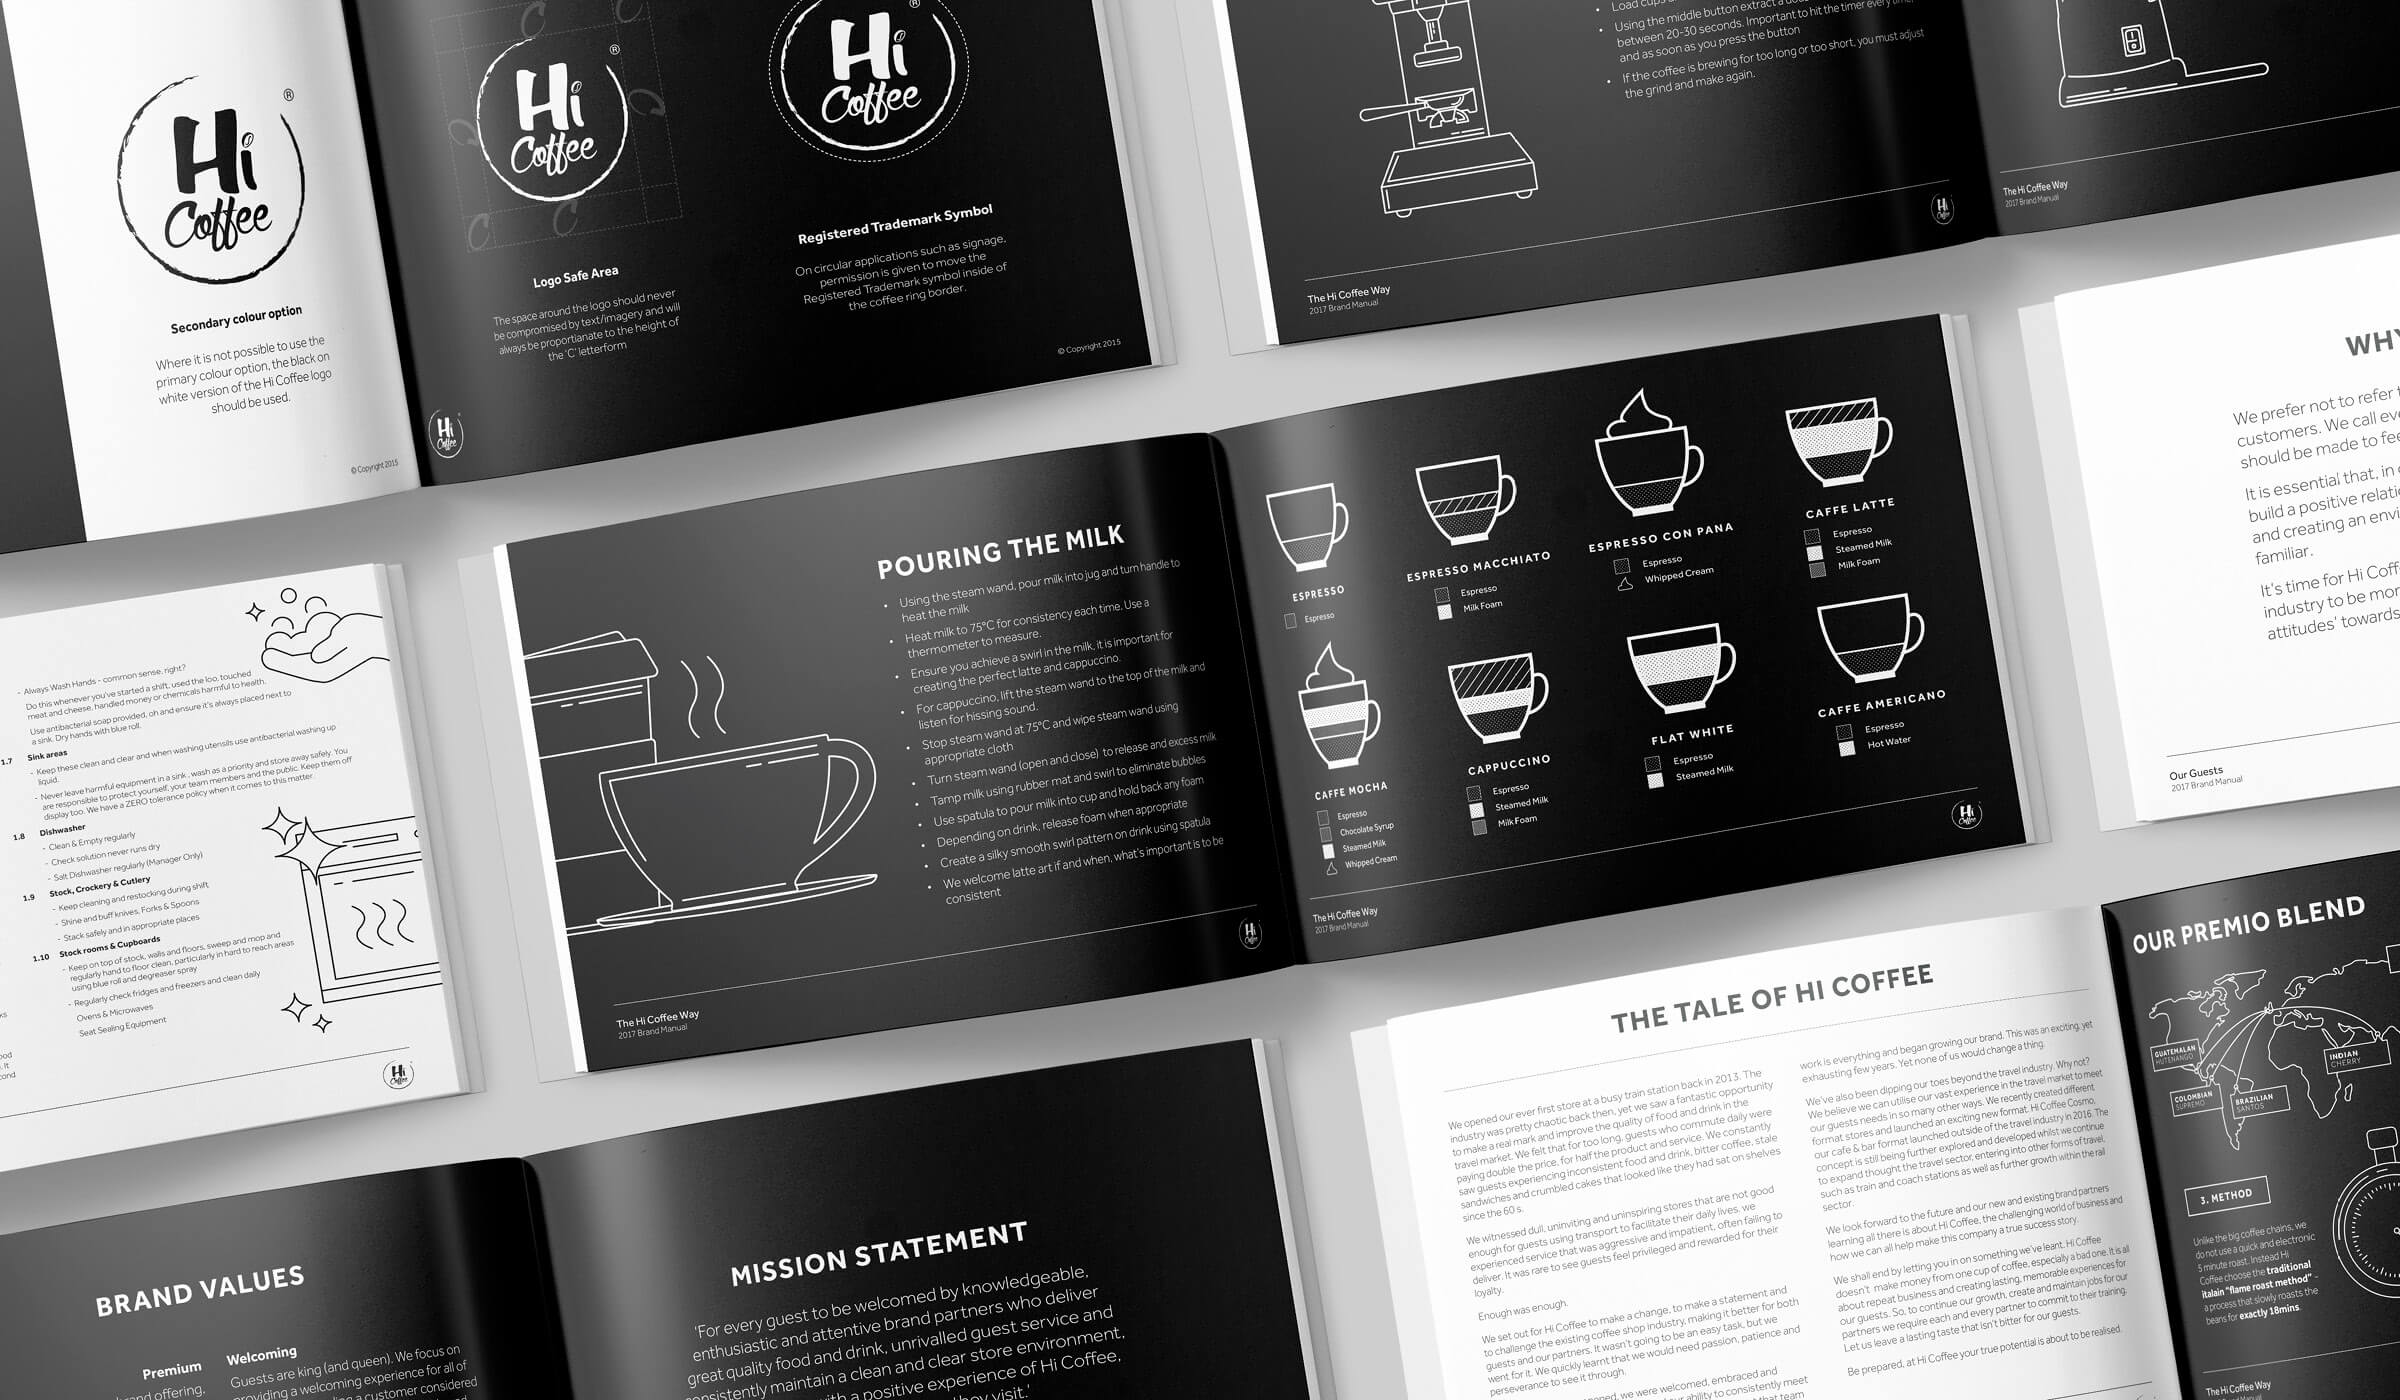 Brand guidelines document for coffee shop in south wales